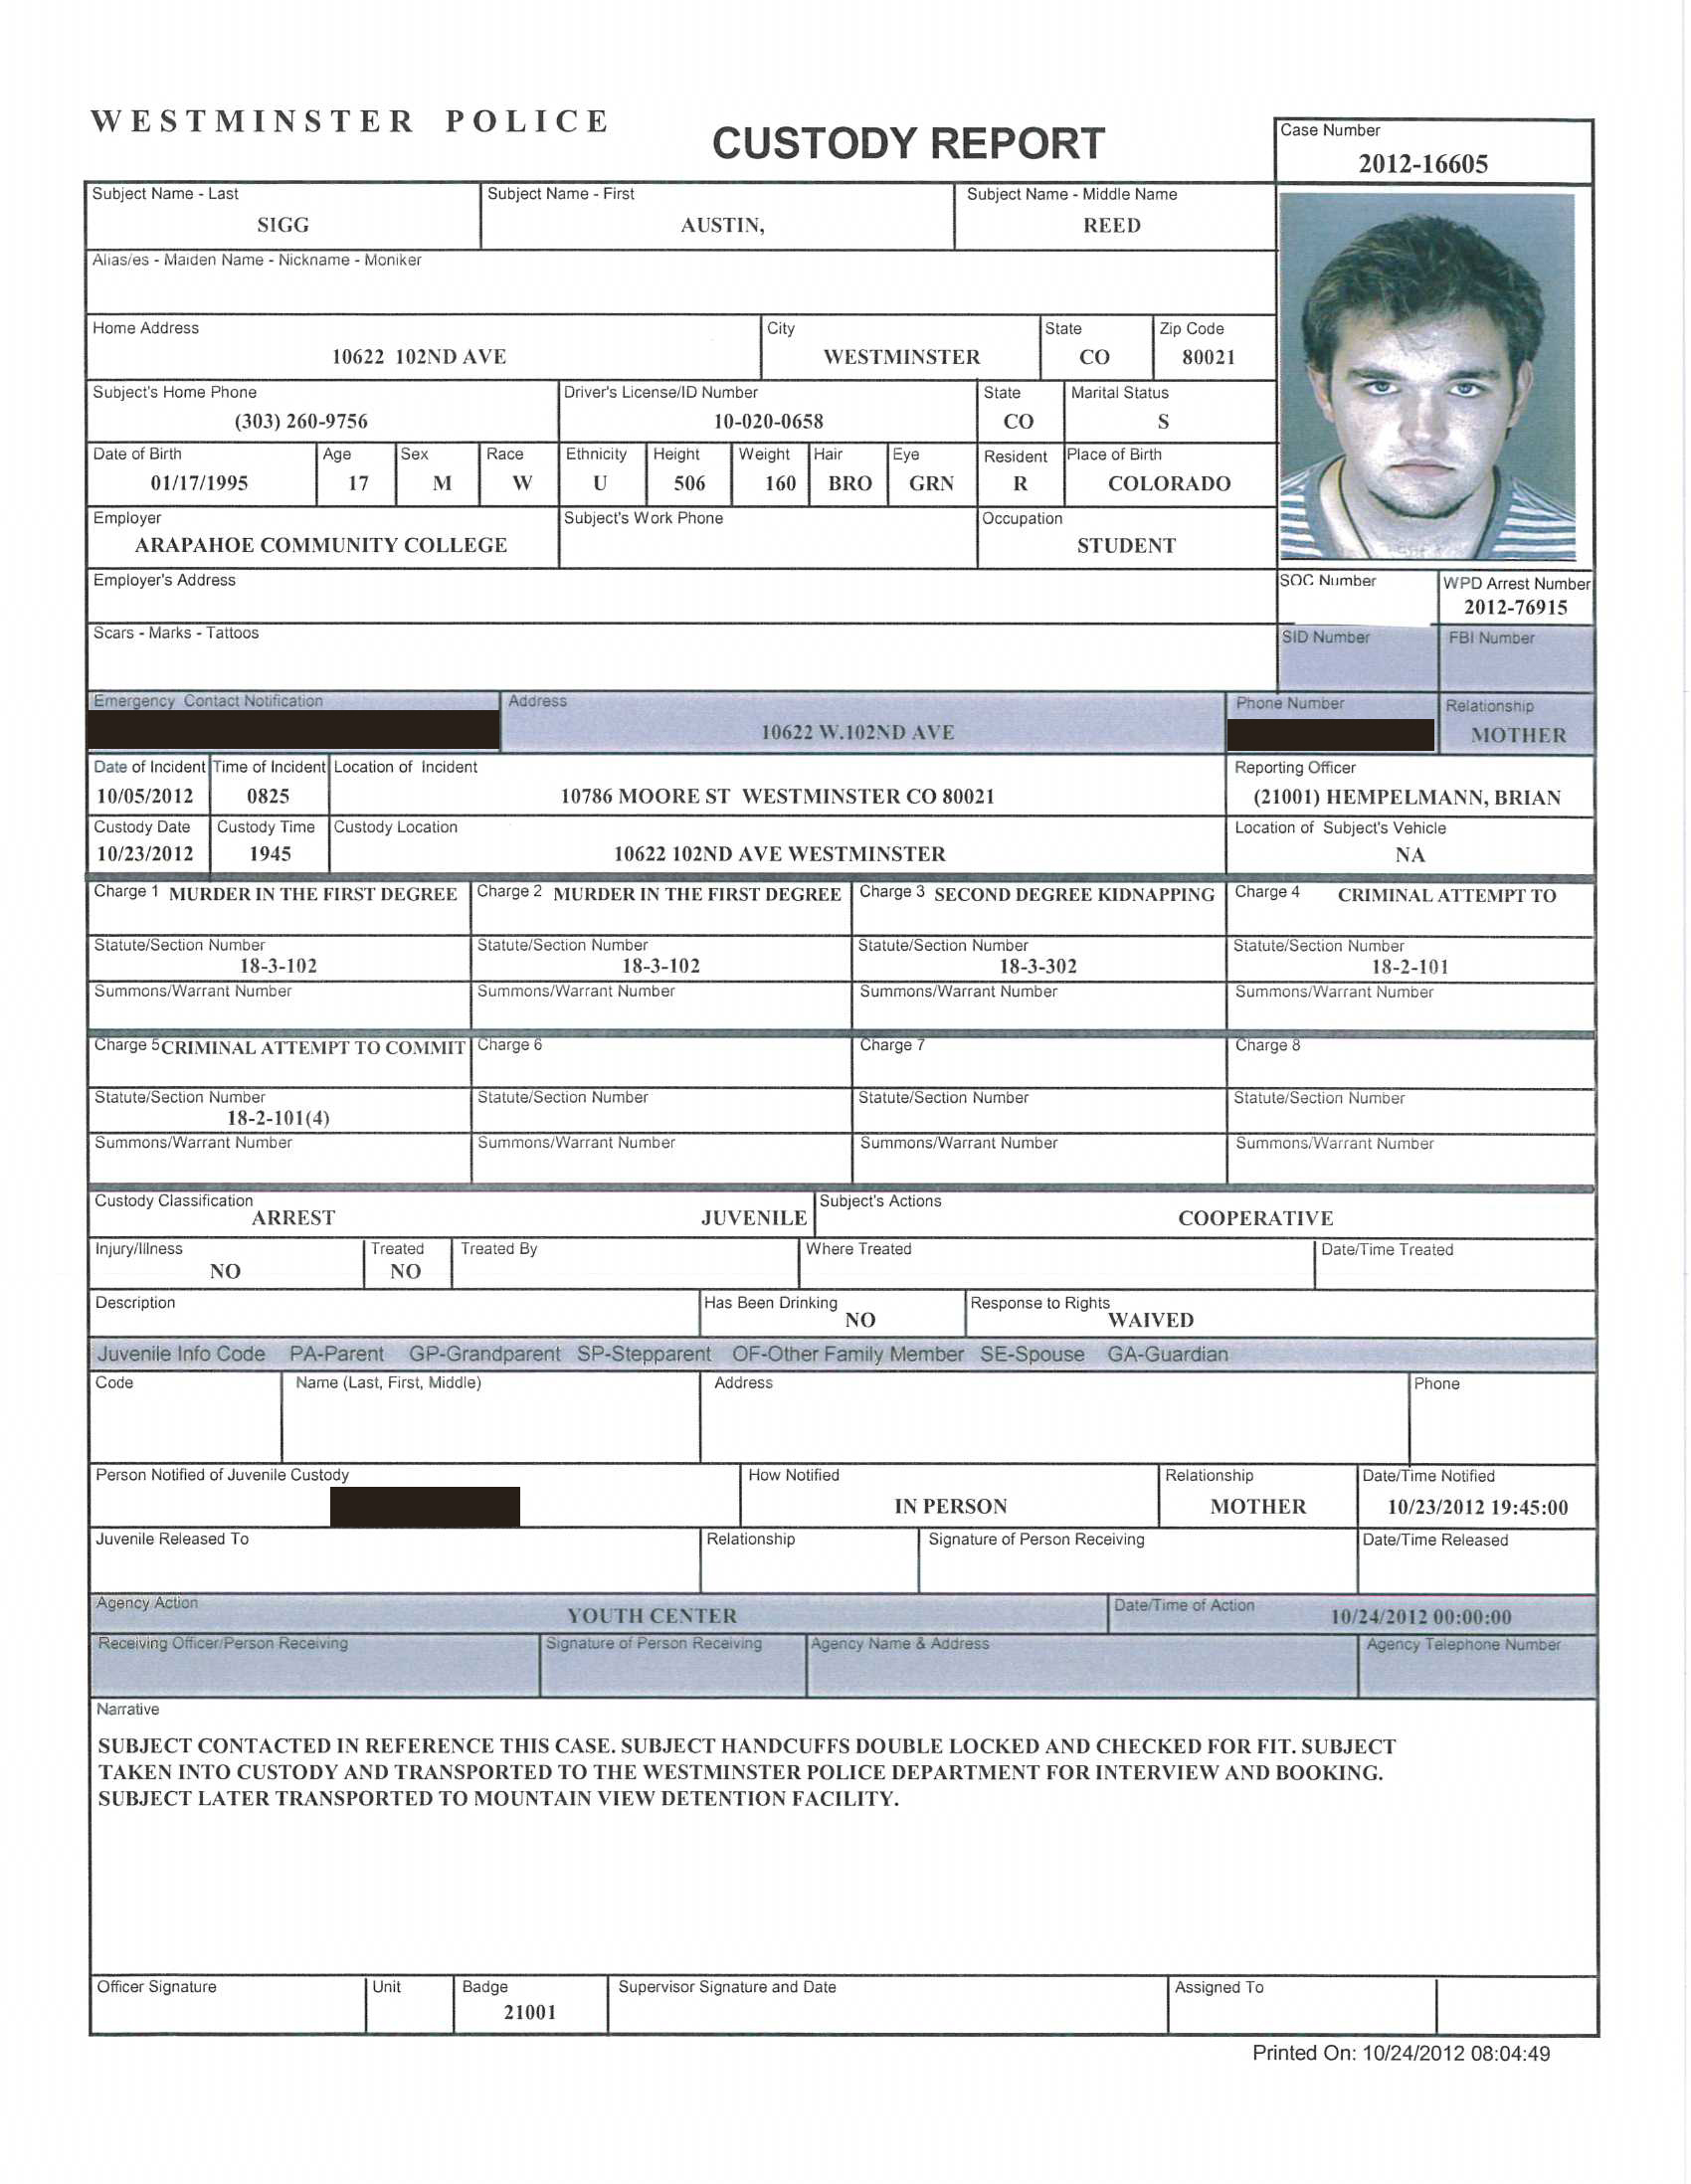 Austin Sigg Custody Report